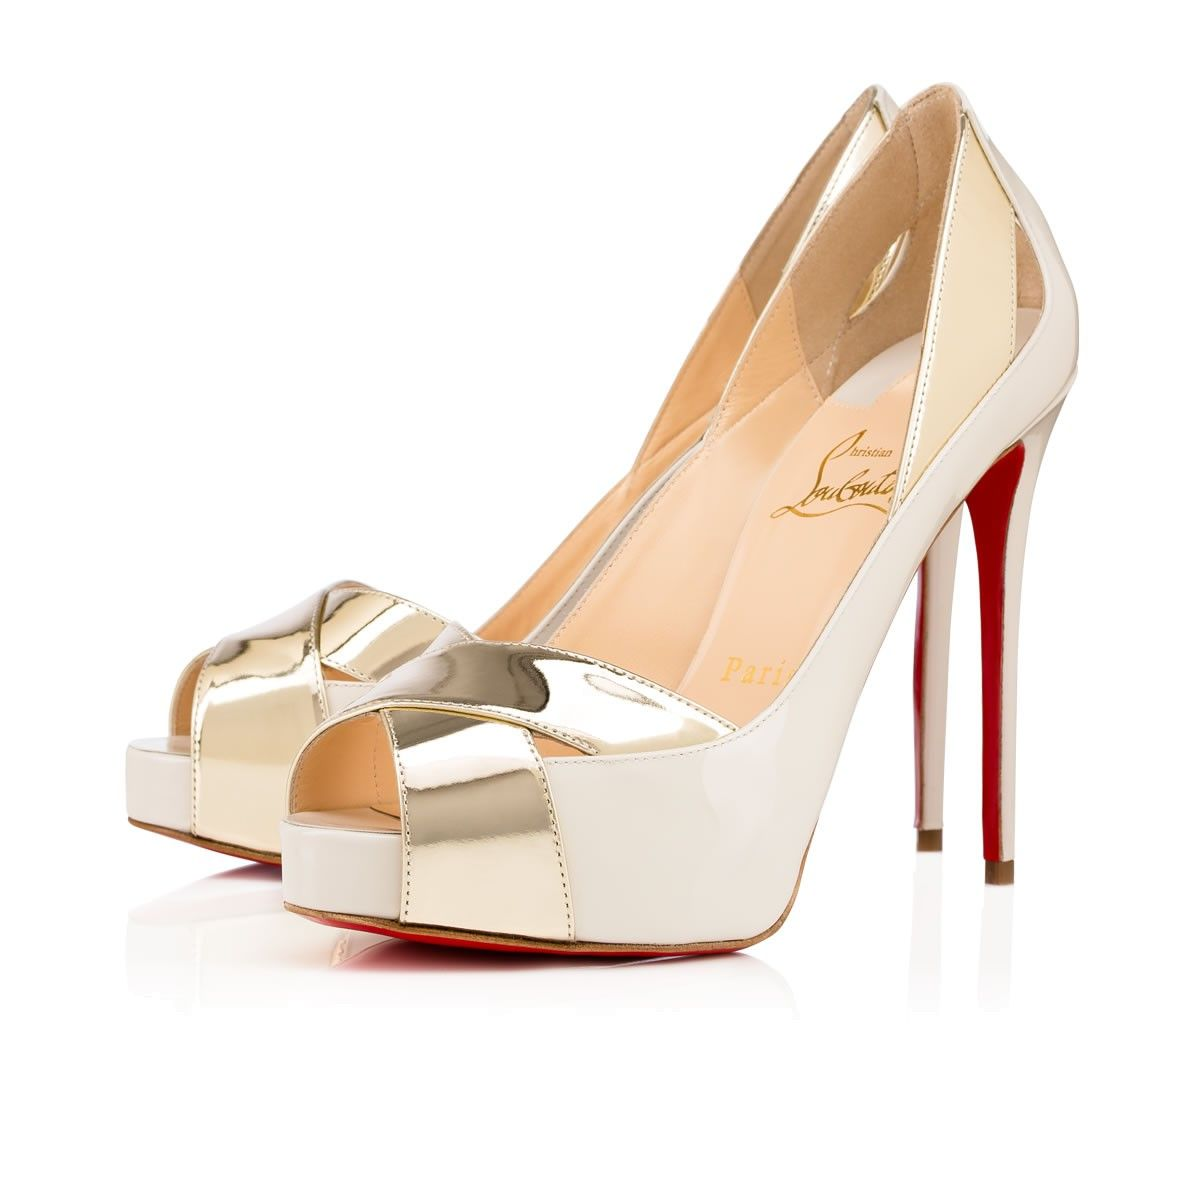 christian louboutin outlet online sale